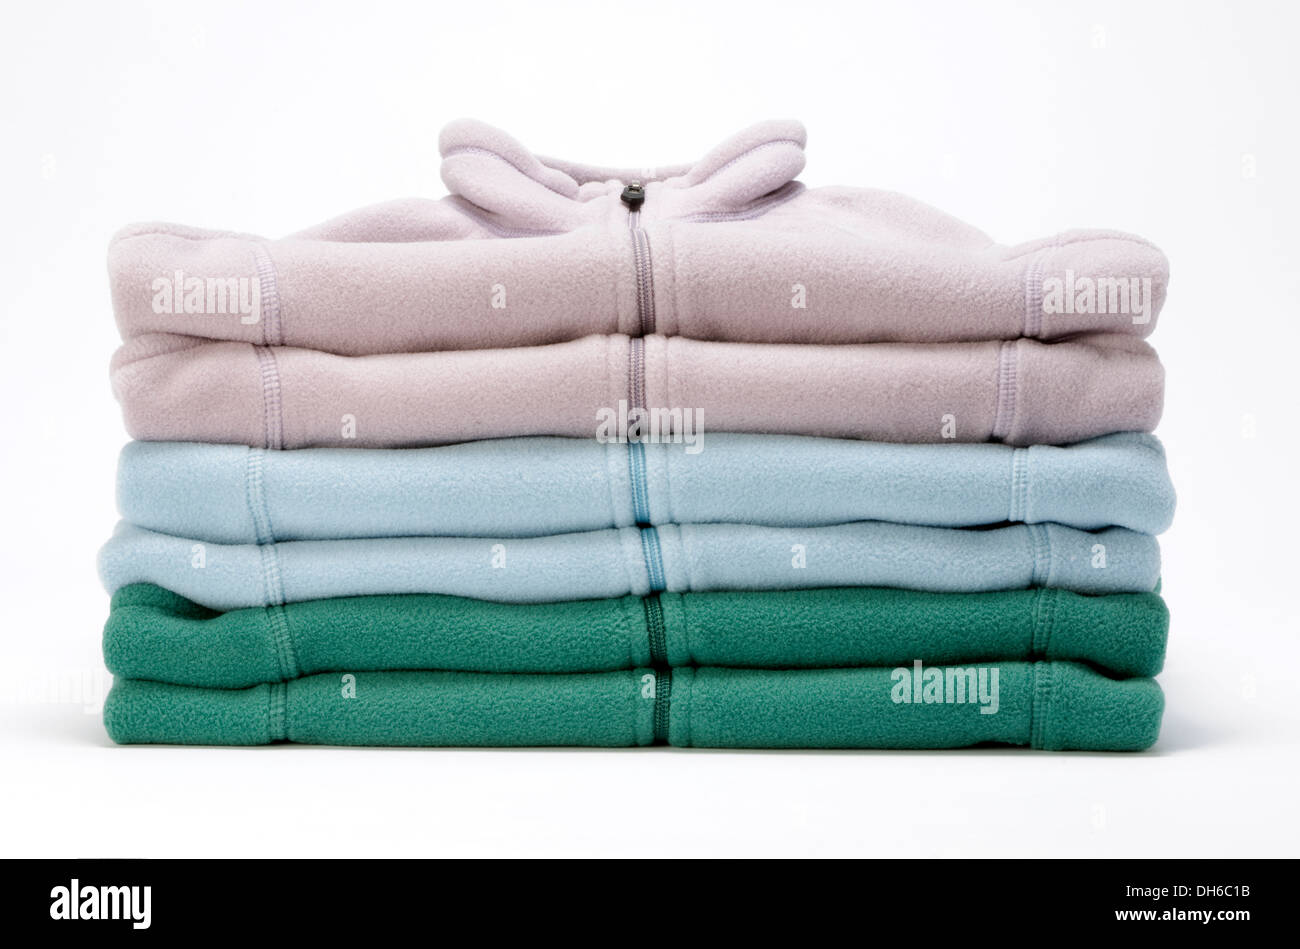 A stack soft pastel colored shirts. - Stock Image